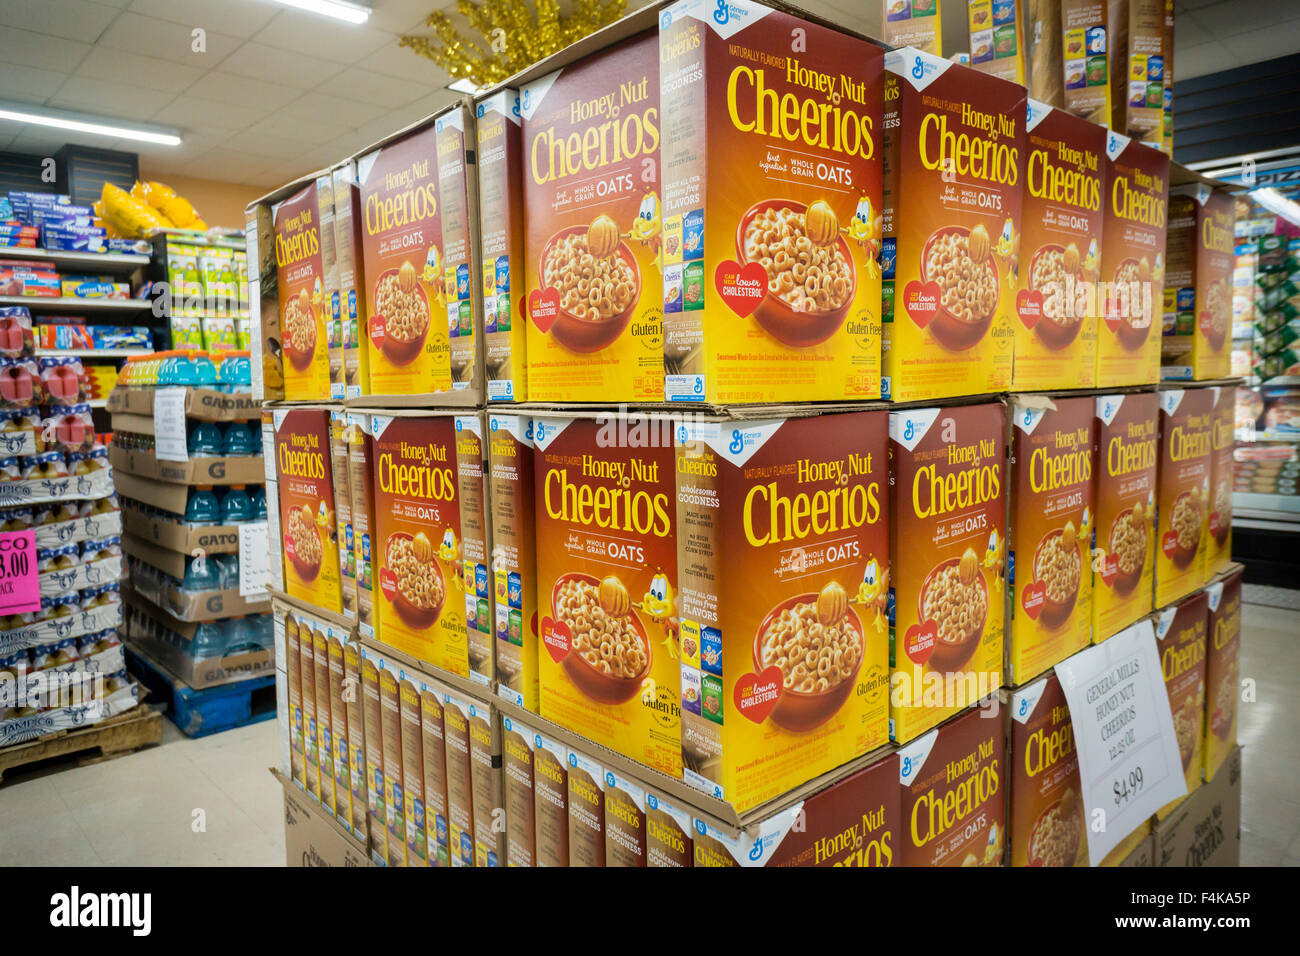 A display of boxes of General Mills Honey Nut Cheerios breakfast cereal in a supermarket in New York on Saturday, - Stock Image